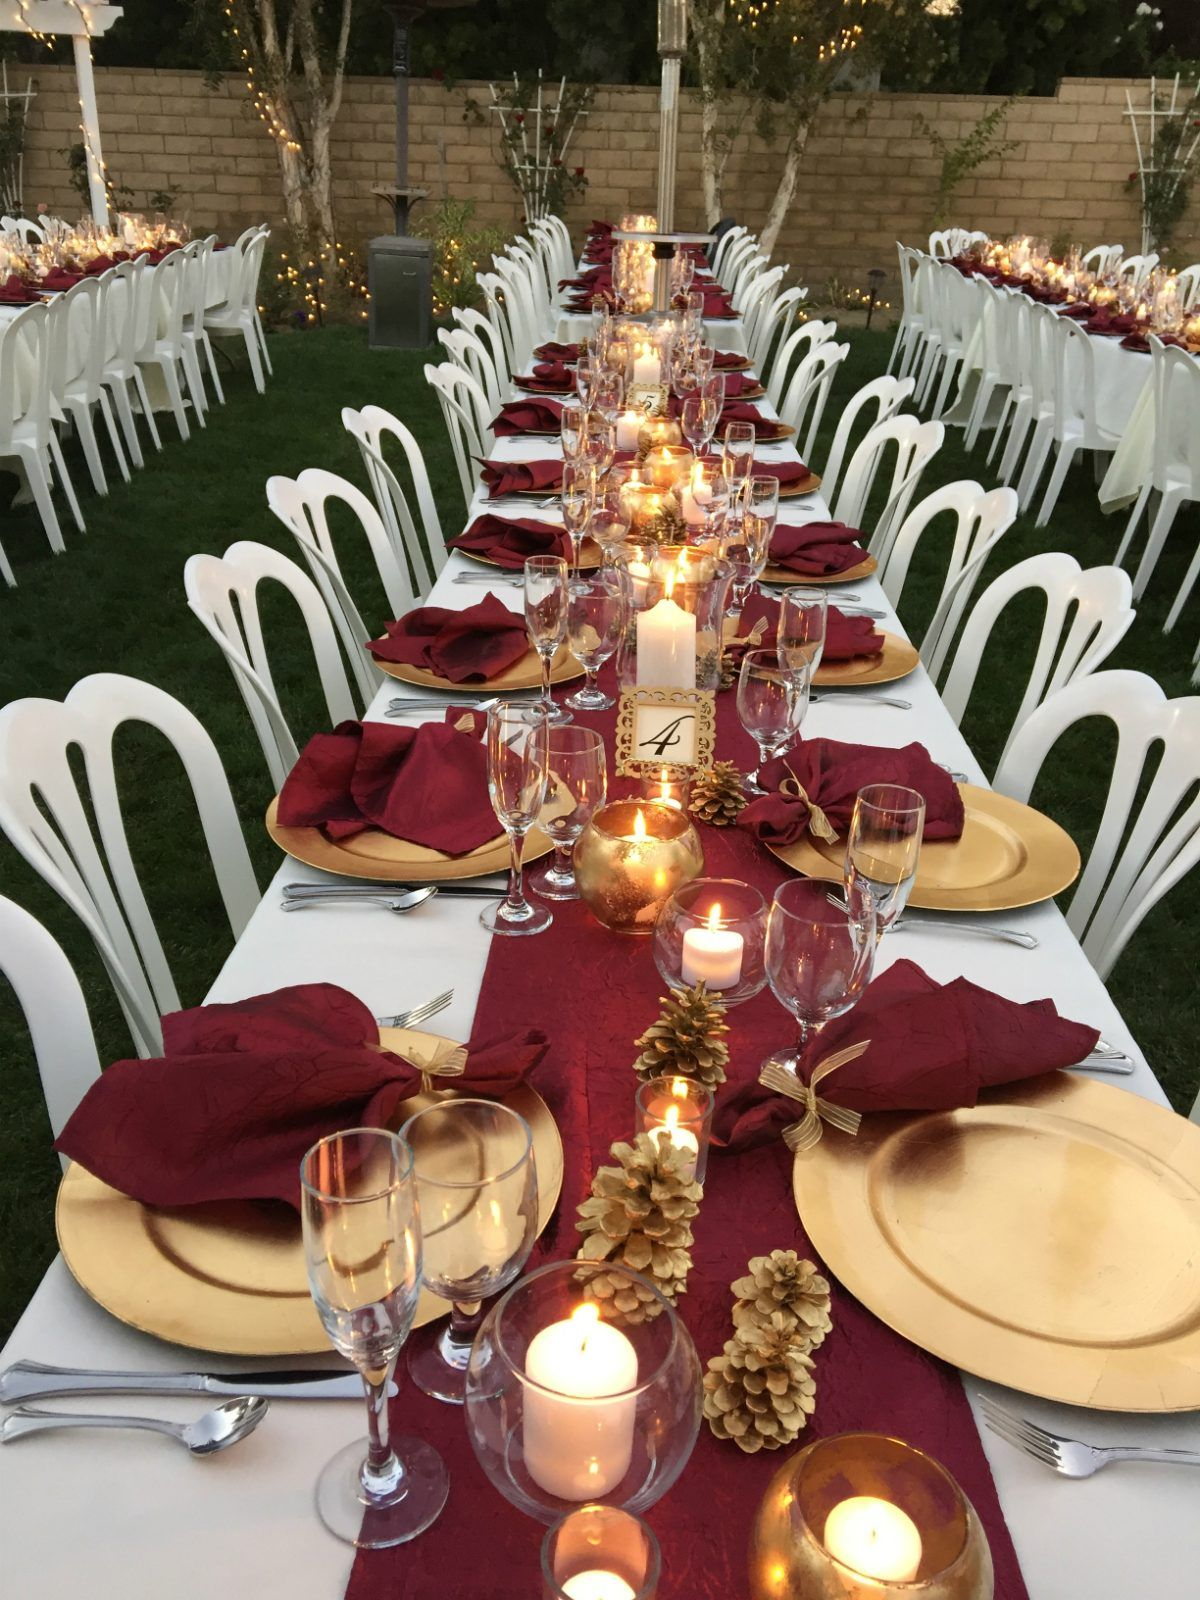 setting wedding video videoblocks sfzps at montenegro thumbnail decorations sea table the zchl in plates banquet